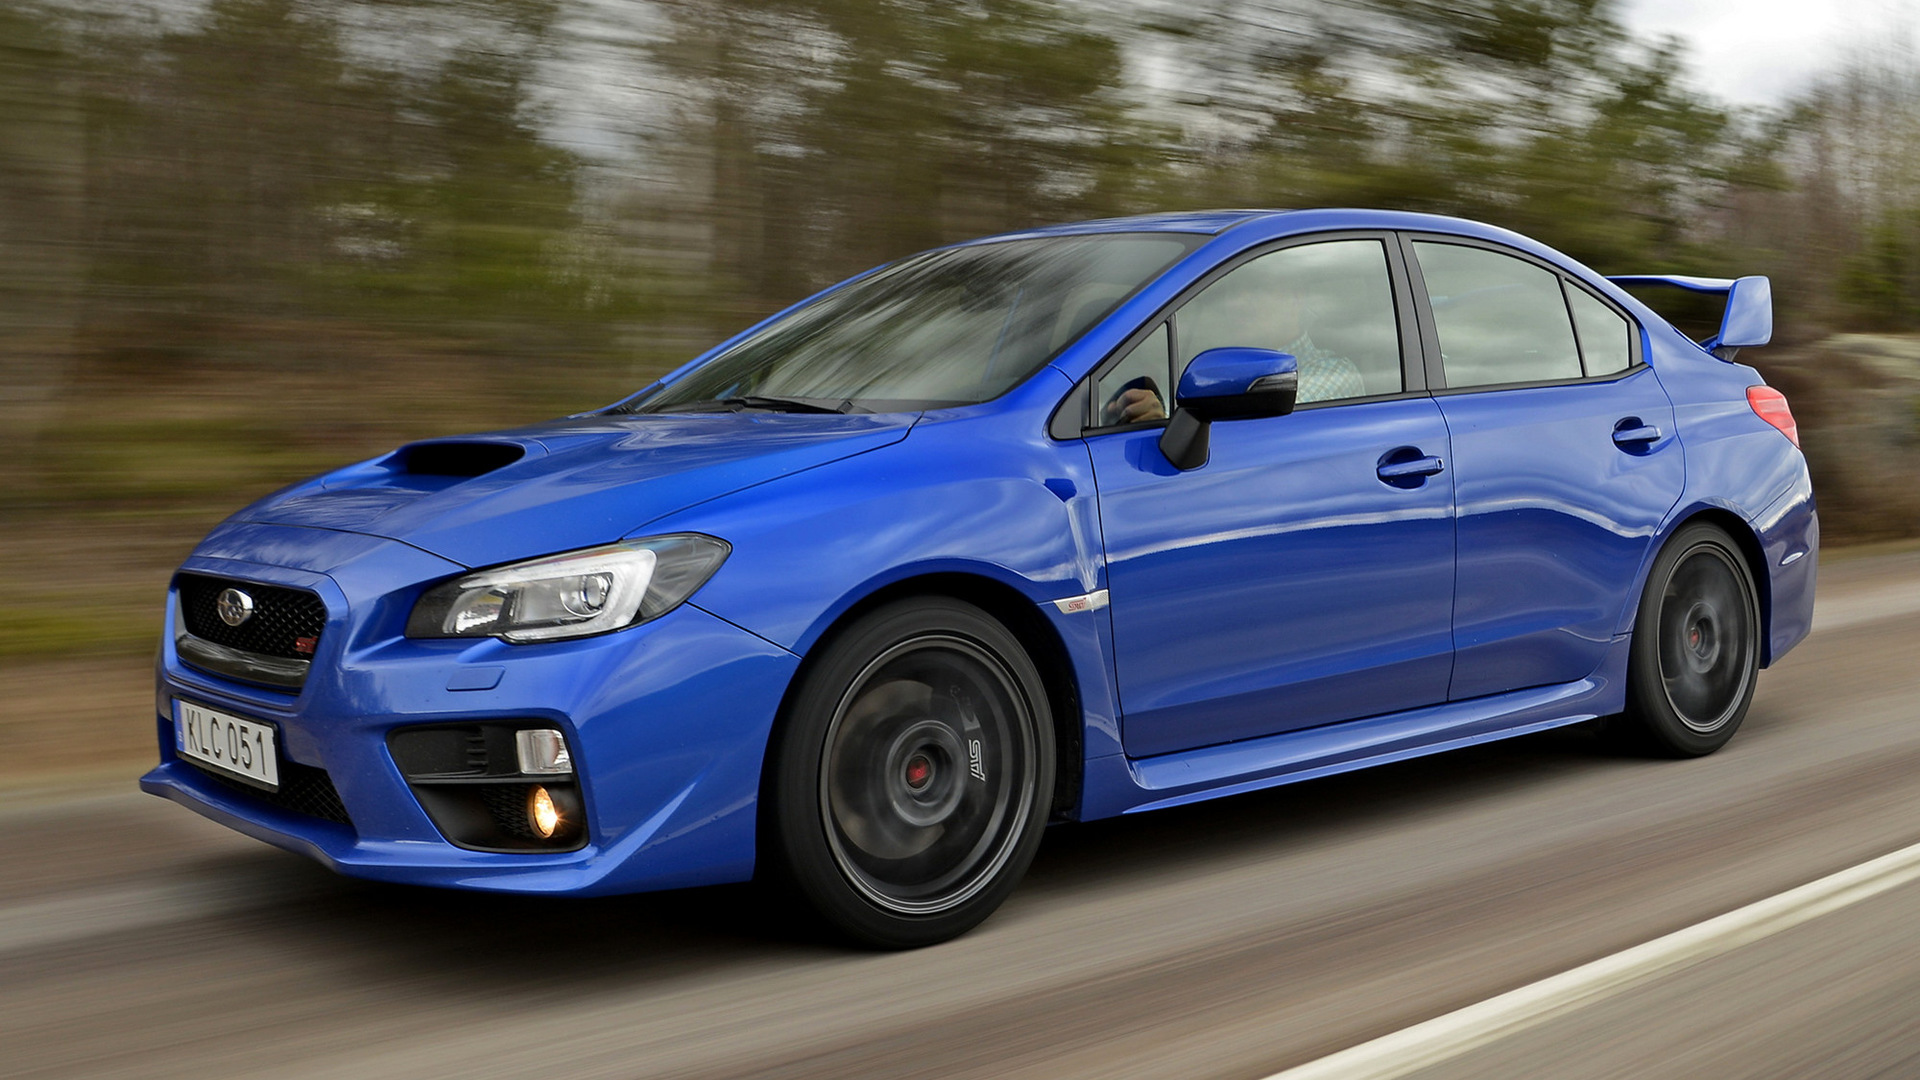 Subaru Wrx Sti 2014 Wallpapers And Hd Images Car Pixel